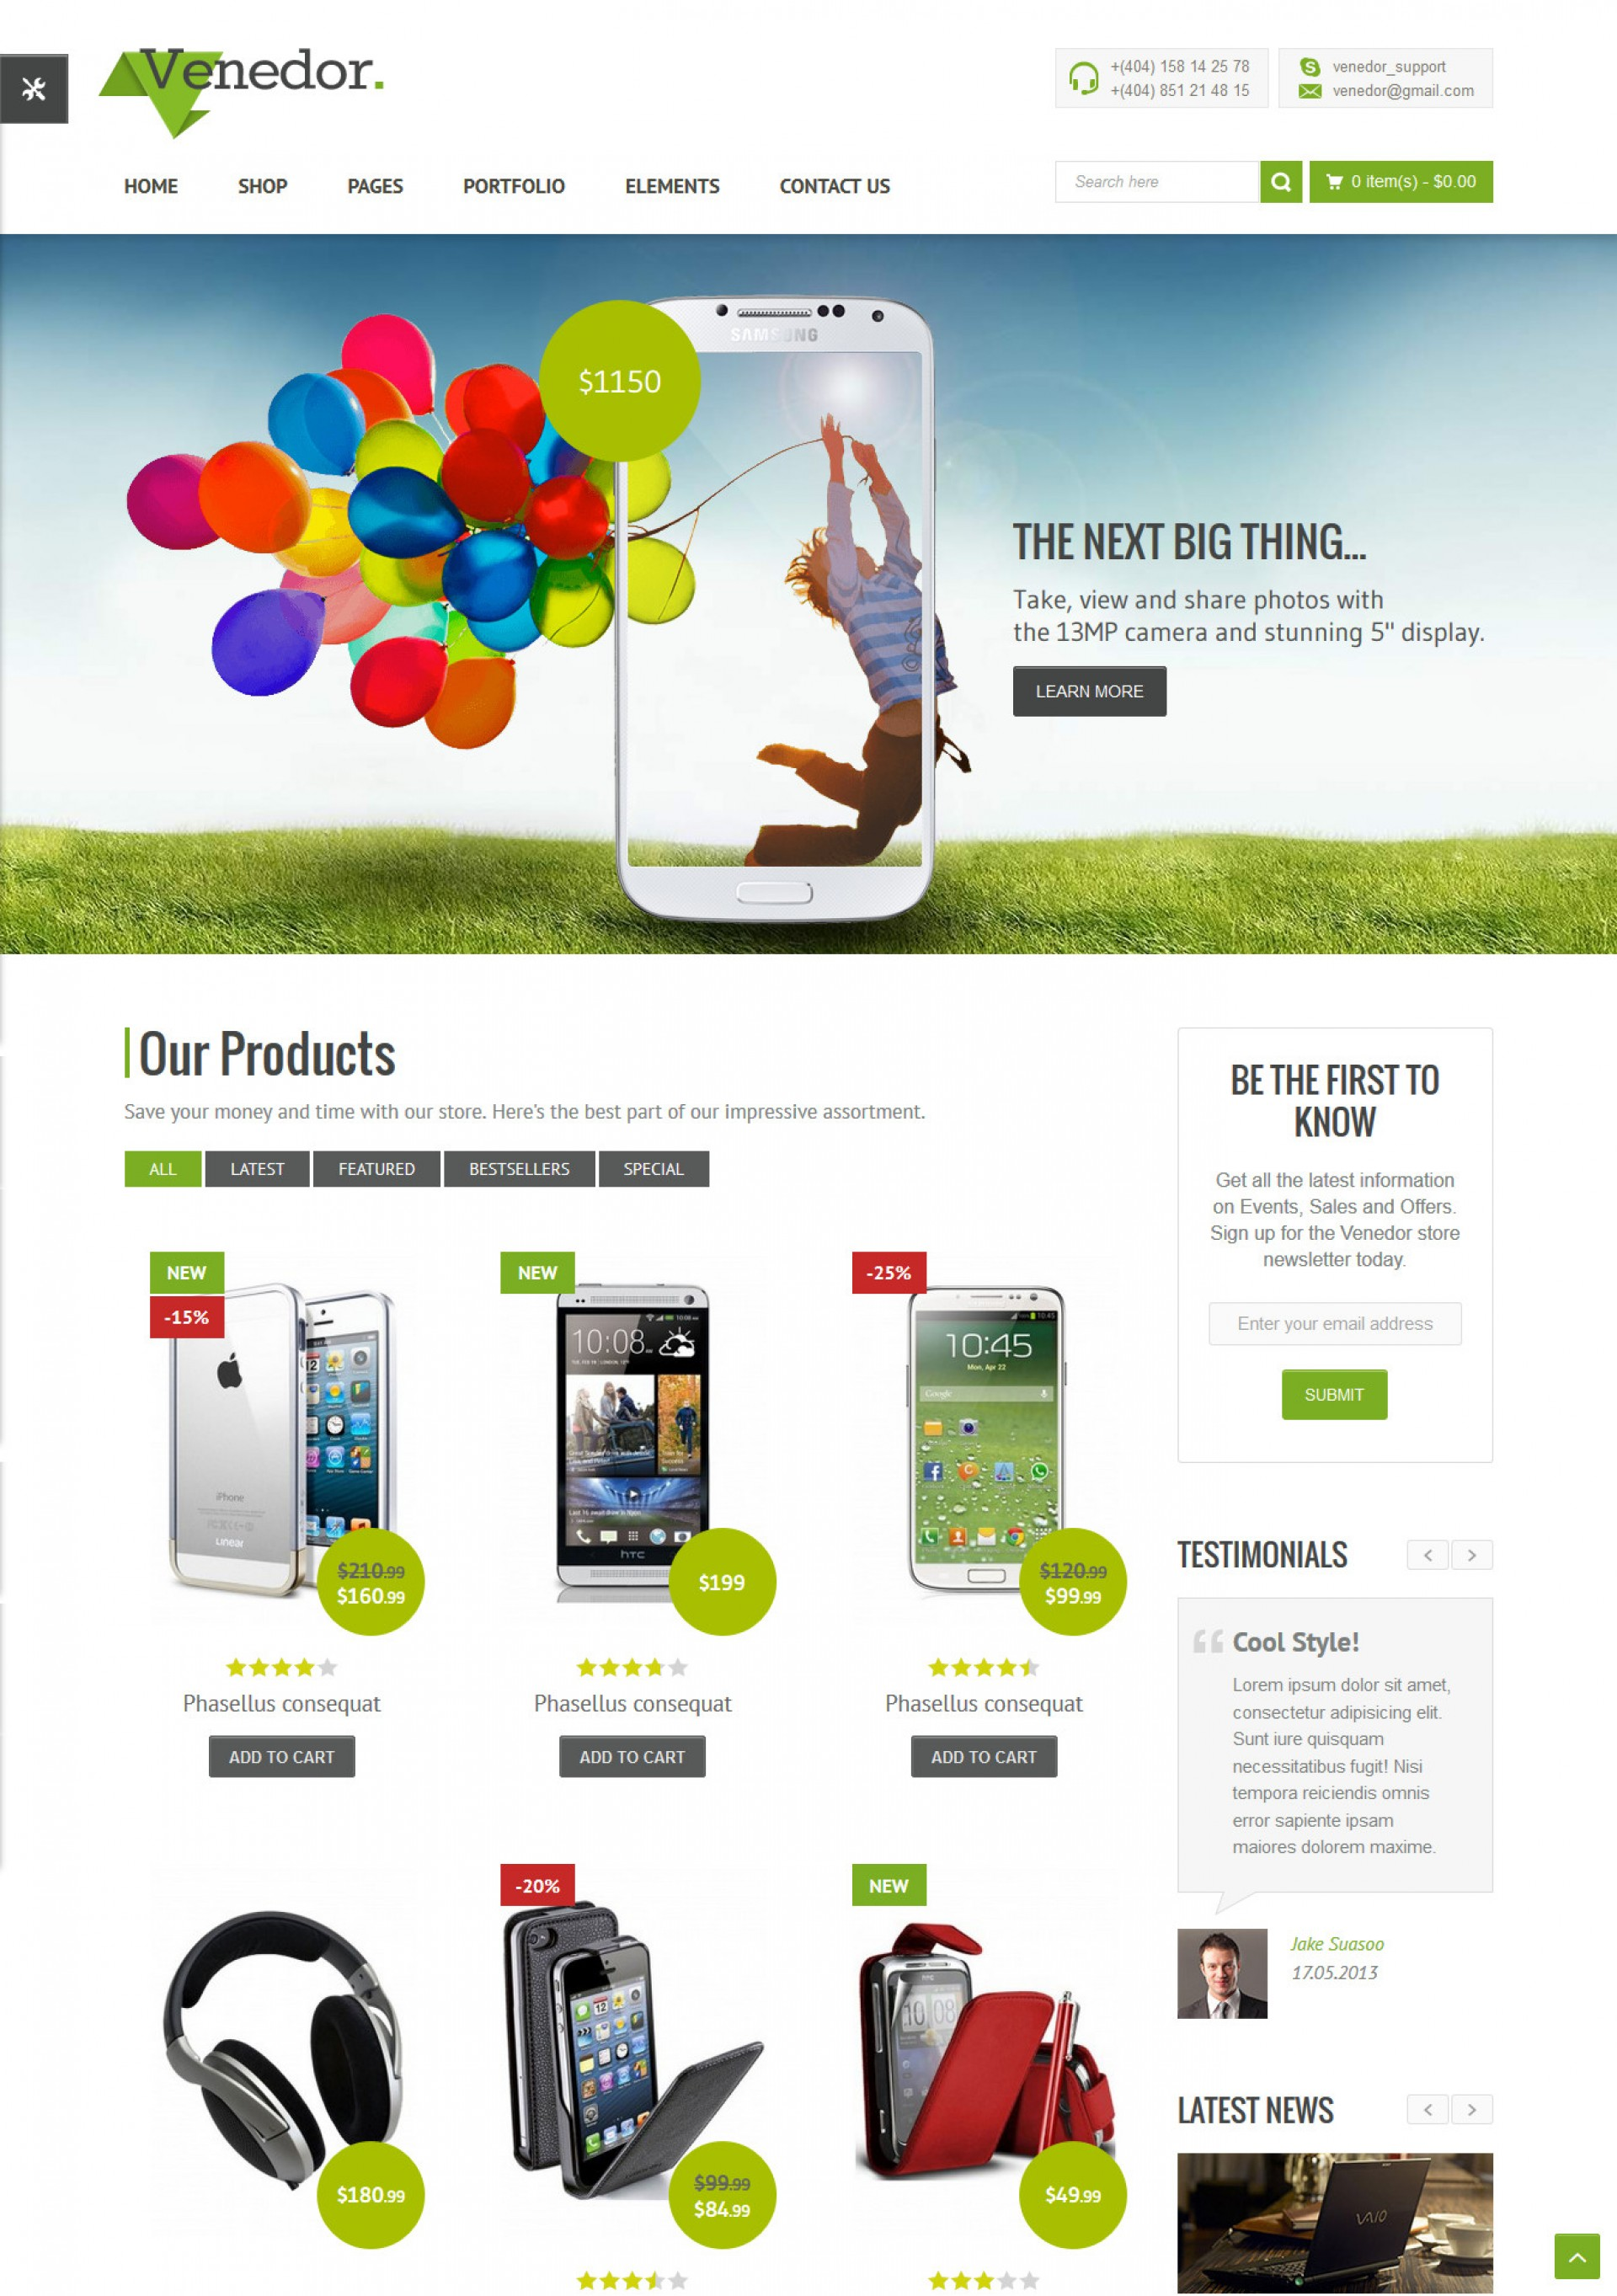 013 Excellent Free E Commerce Website Template High Resolution  Ecommerce Html Cs Bootstrap Php1920